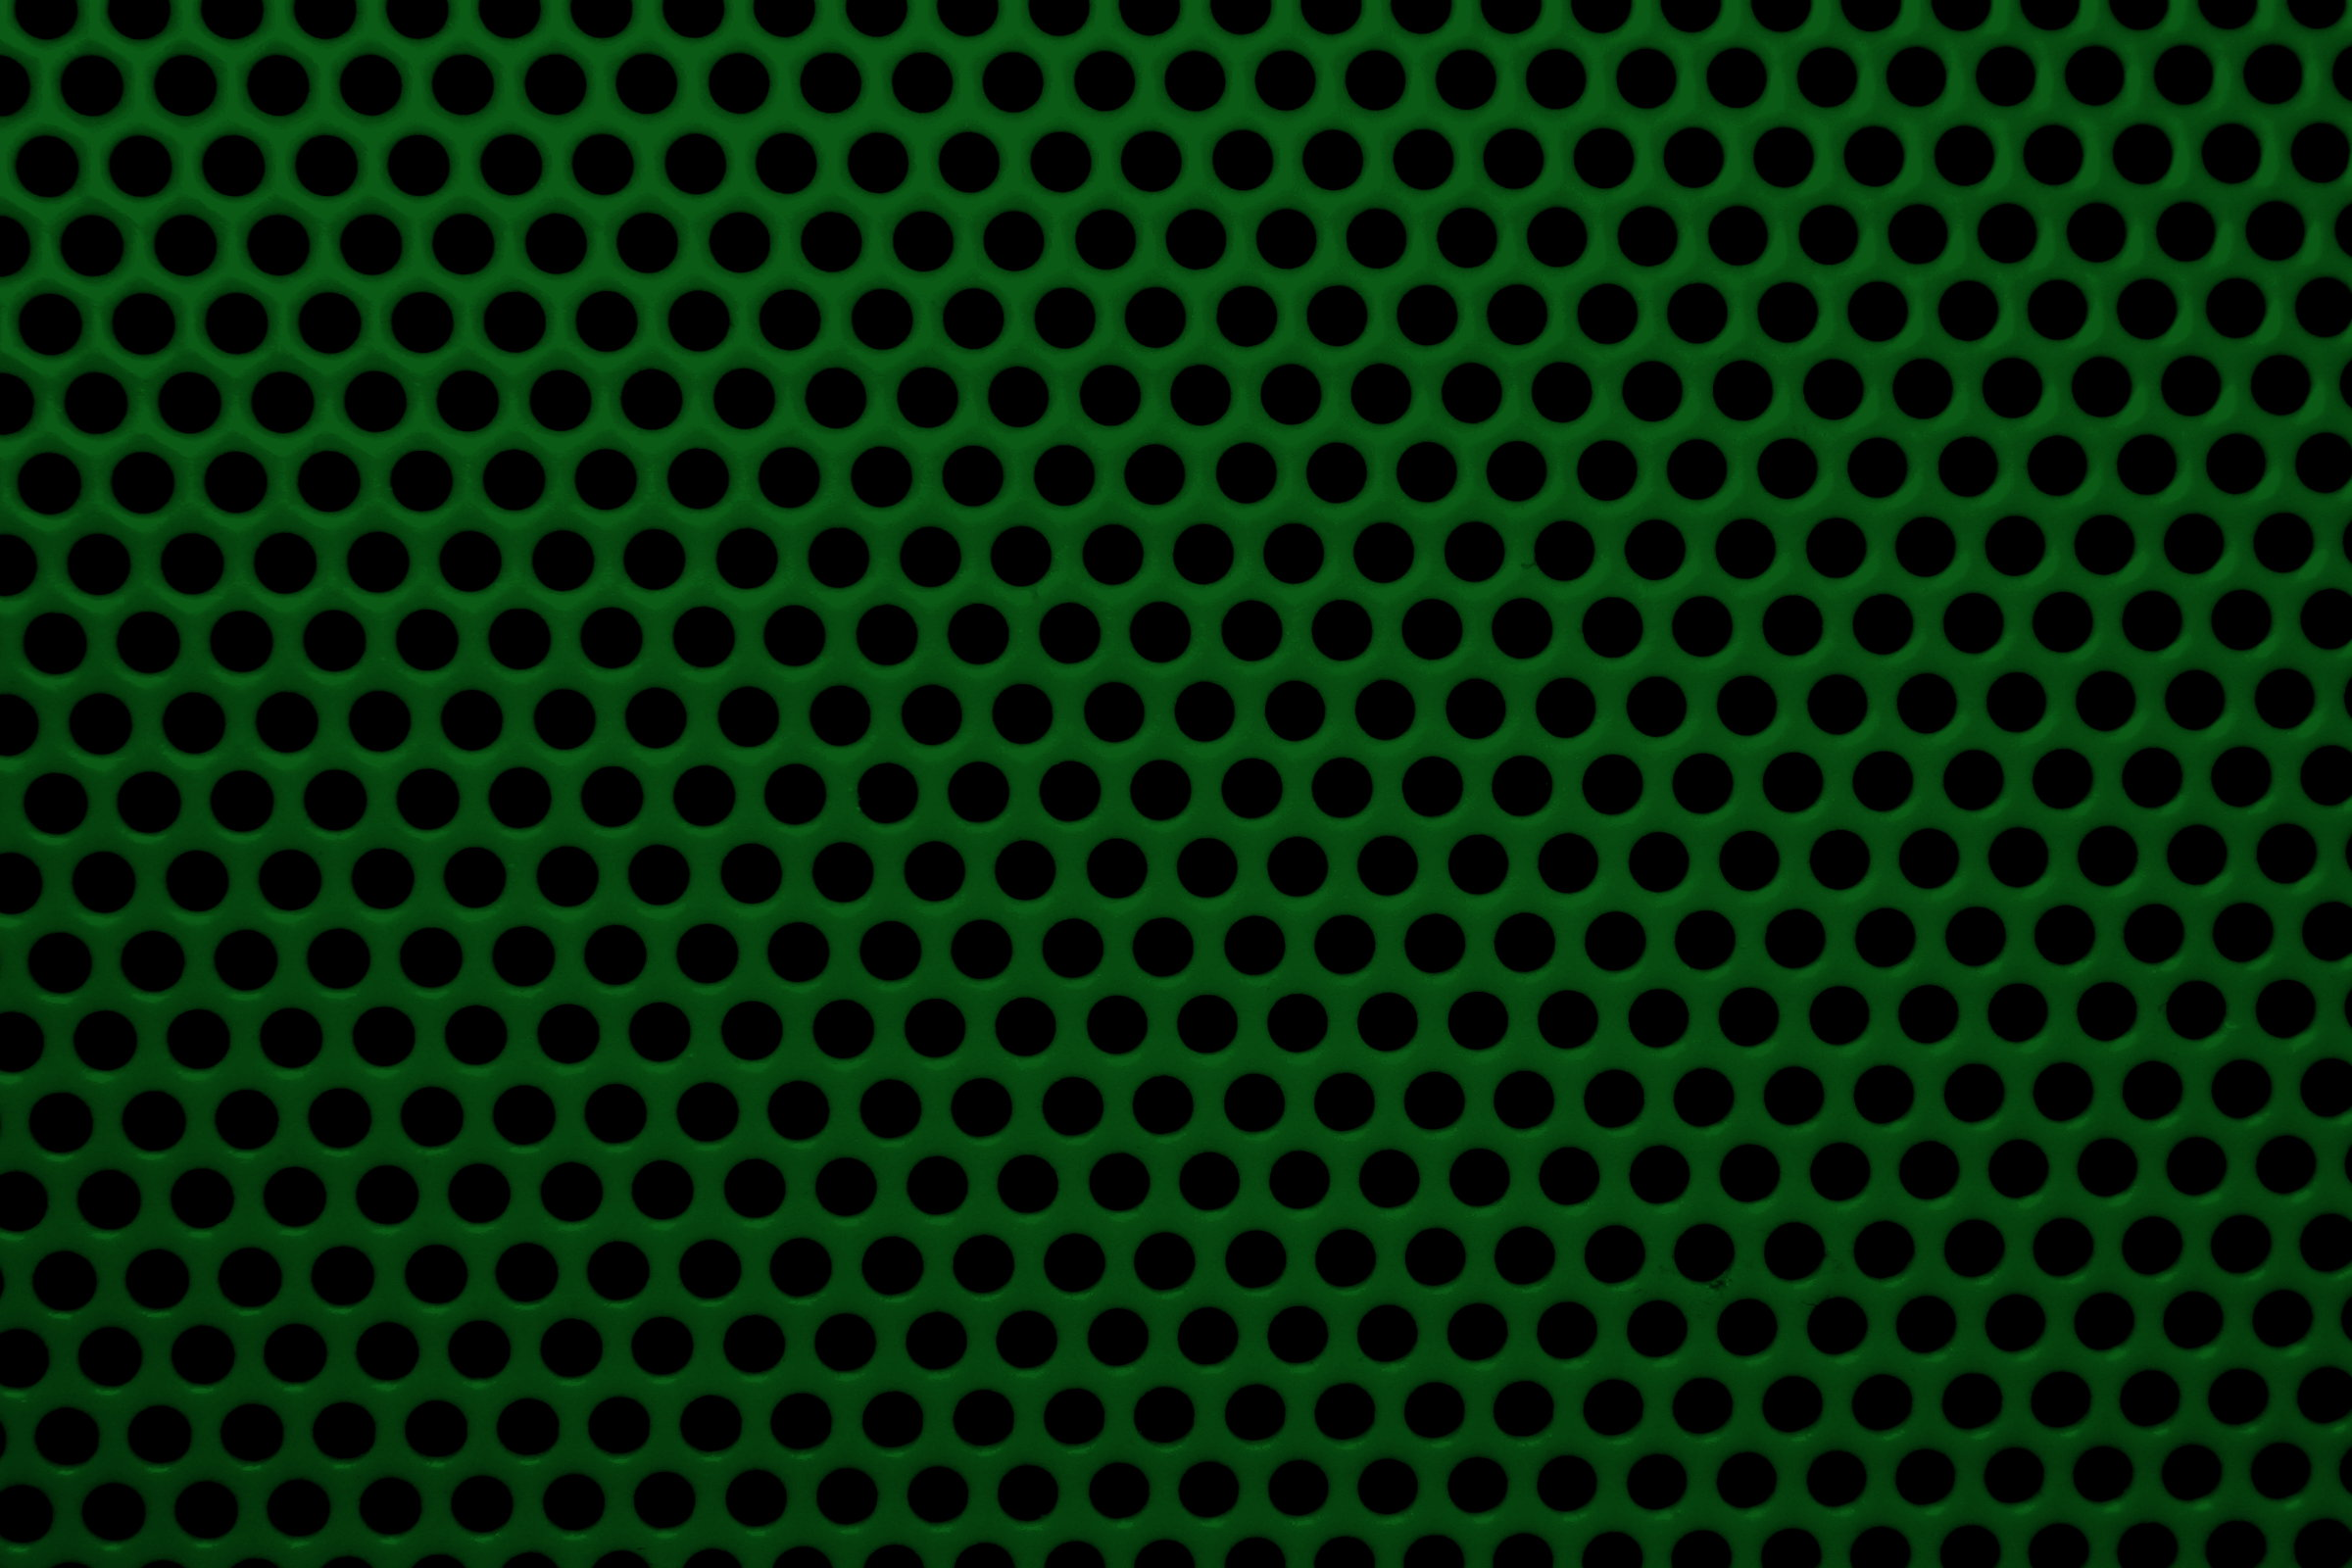 Forest Green Mesh With Round Holes Texture Picture Free